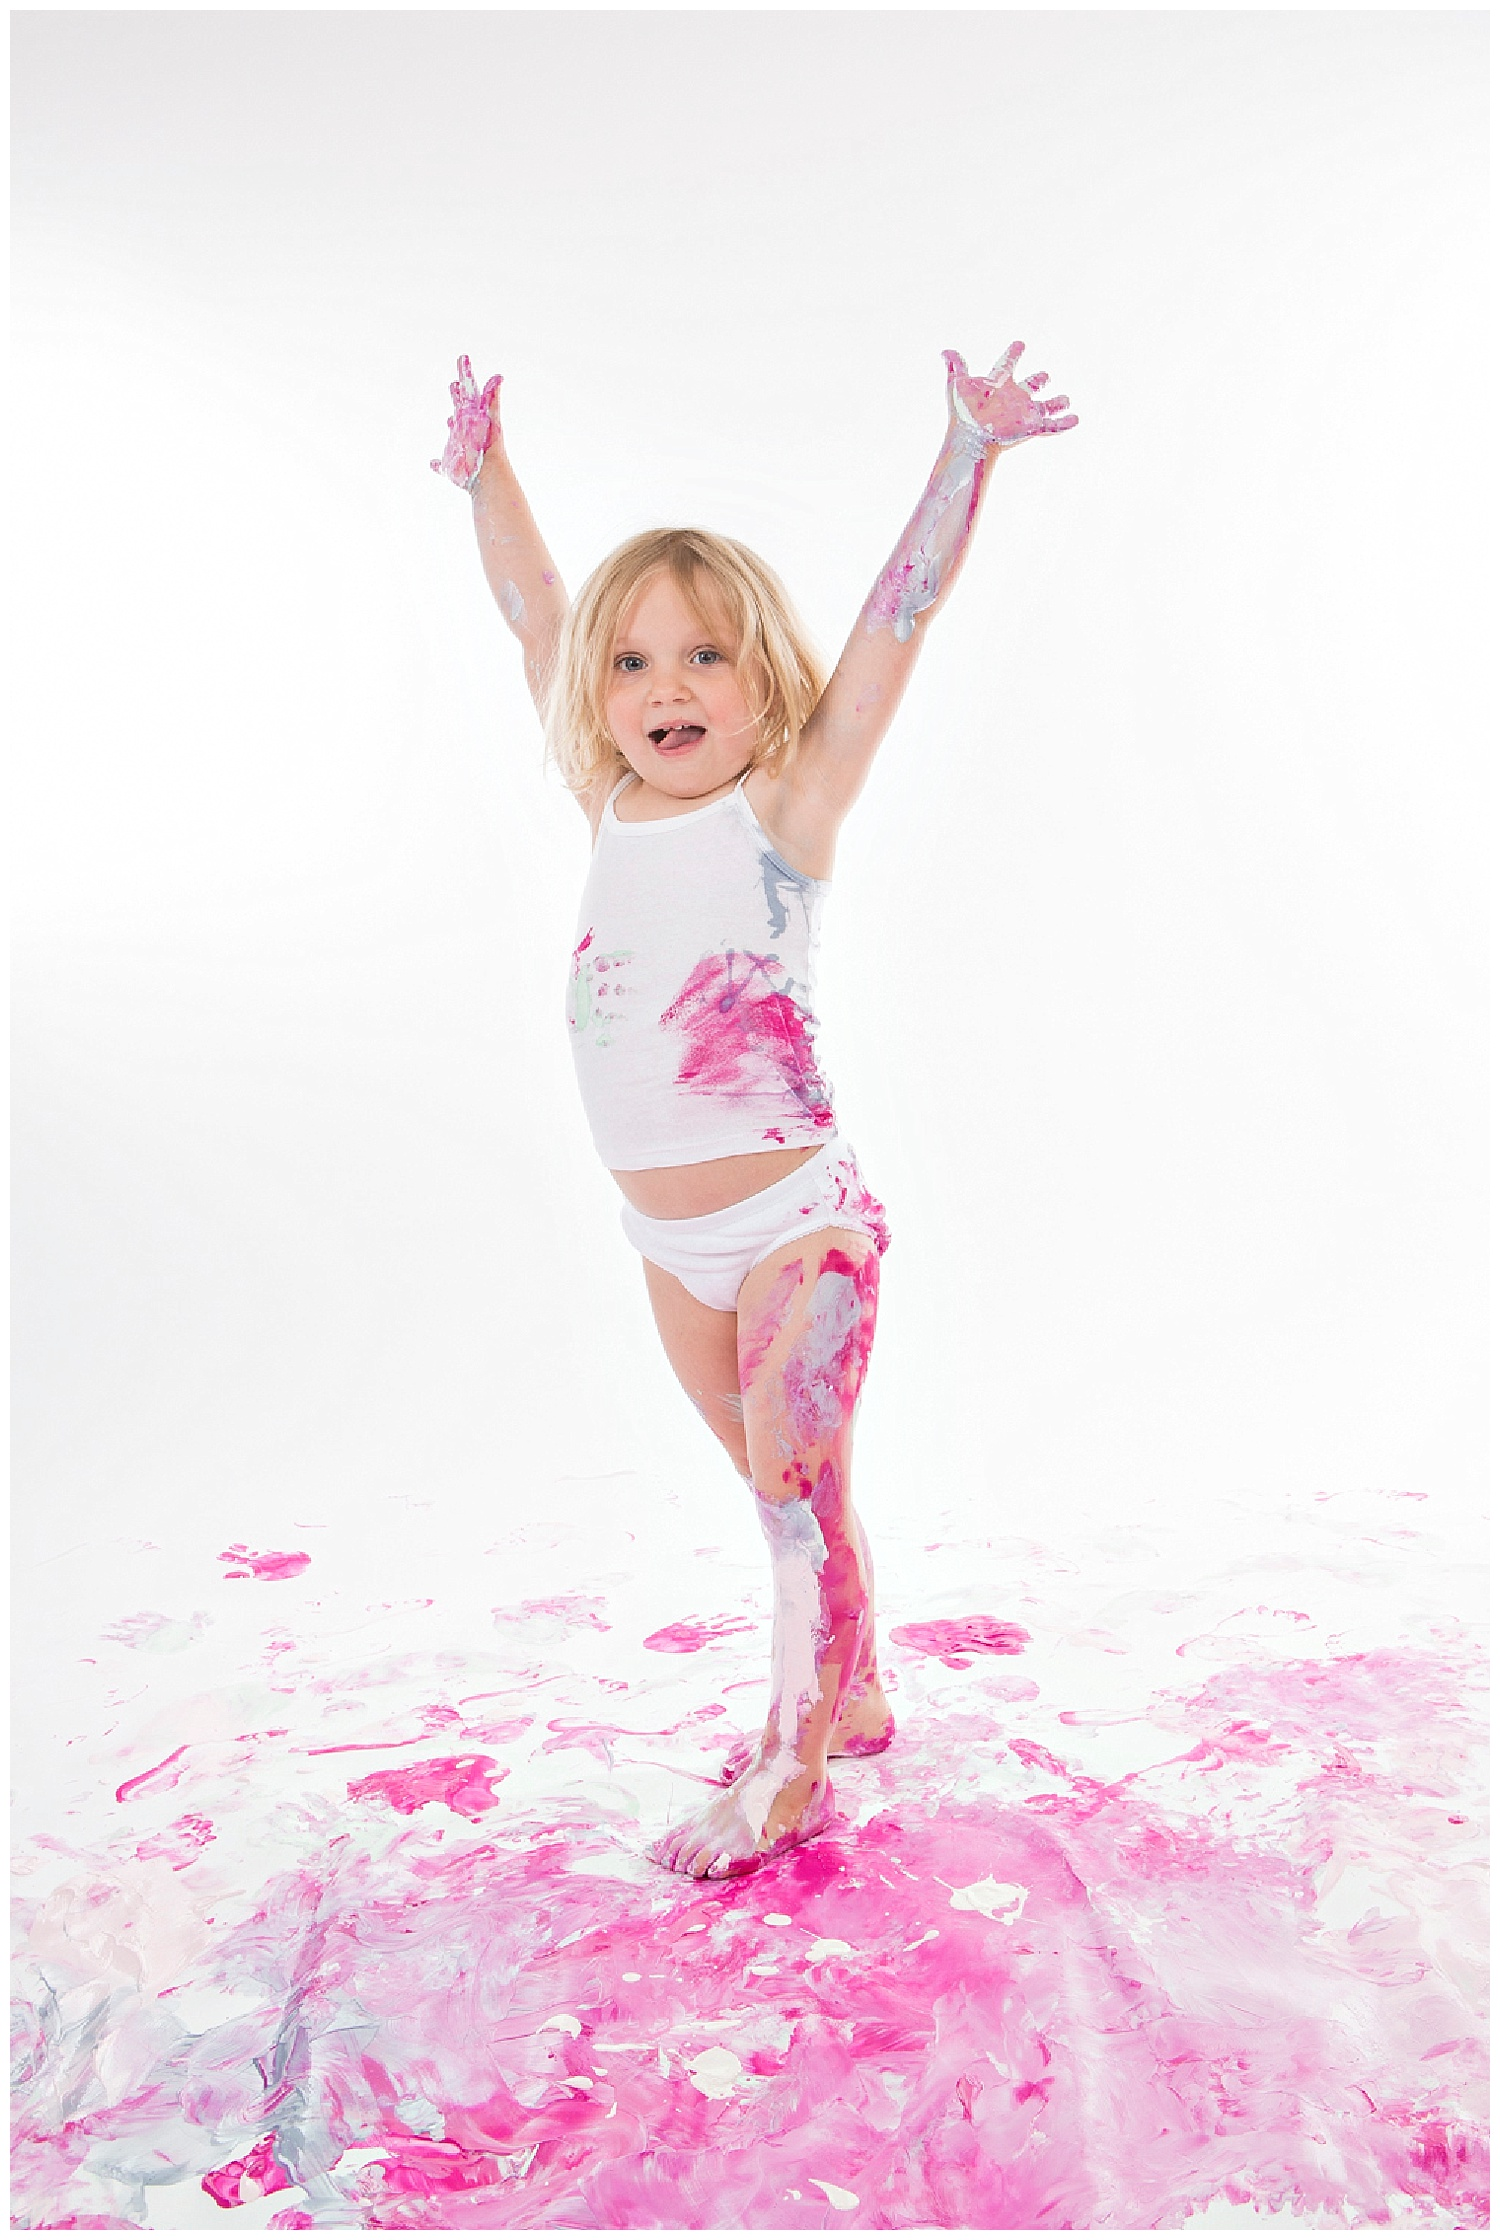 Andrea-Burolla-Photography-Denver-childrens-photographer-paint-session-happy-little-blonde-girl-pink-messy.jpg